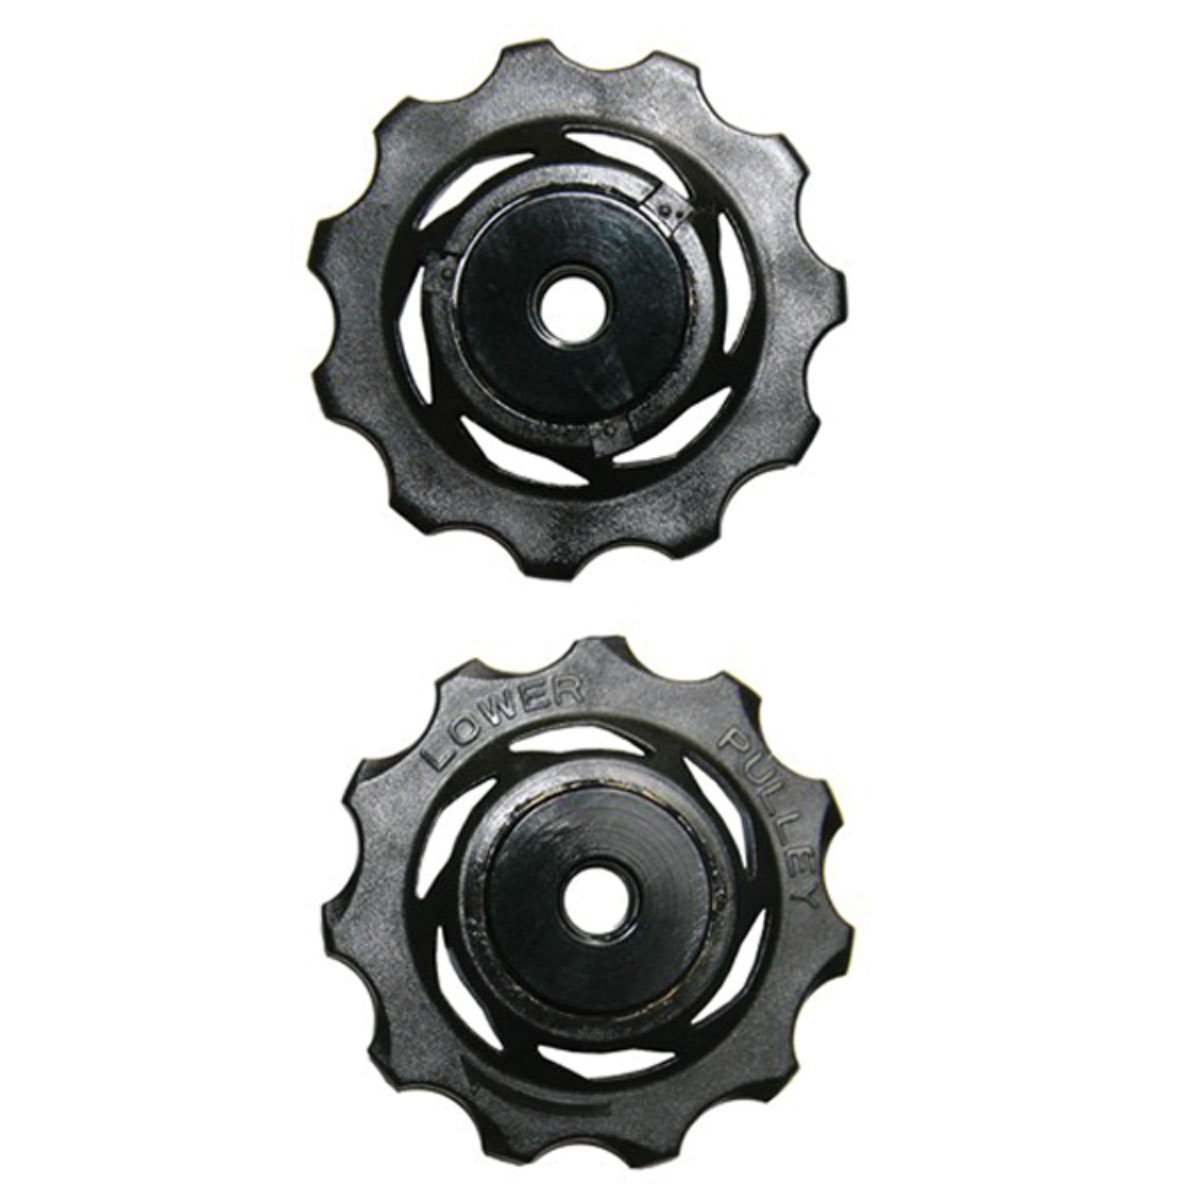 SRAM X0 Type2 Bicycle Rear Derailleur Pulley Kit - 11.7518.018.000